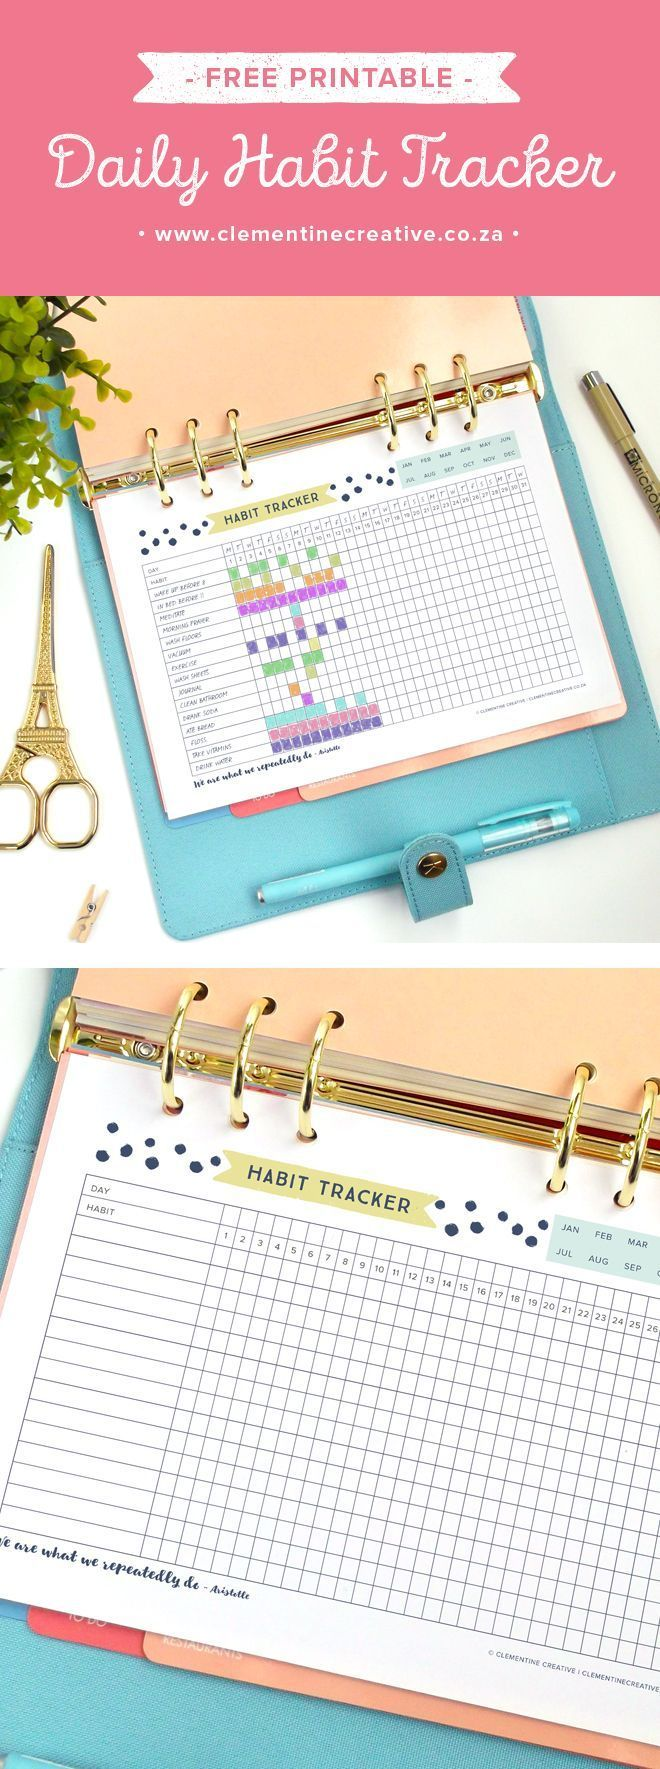 best kikki planner images on pinterest hello kitty stuff